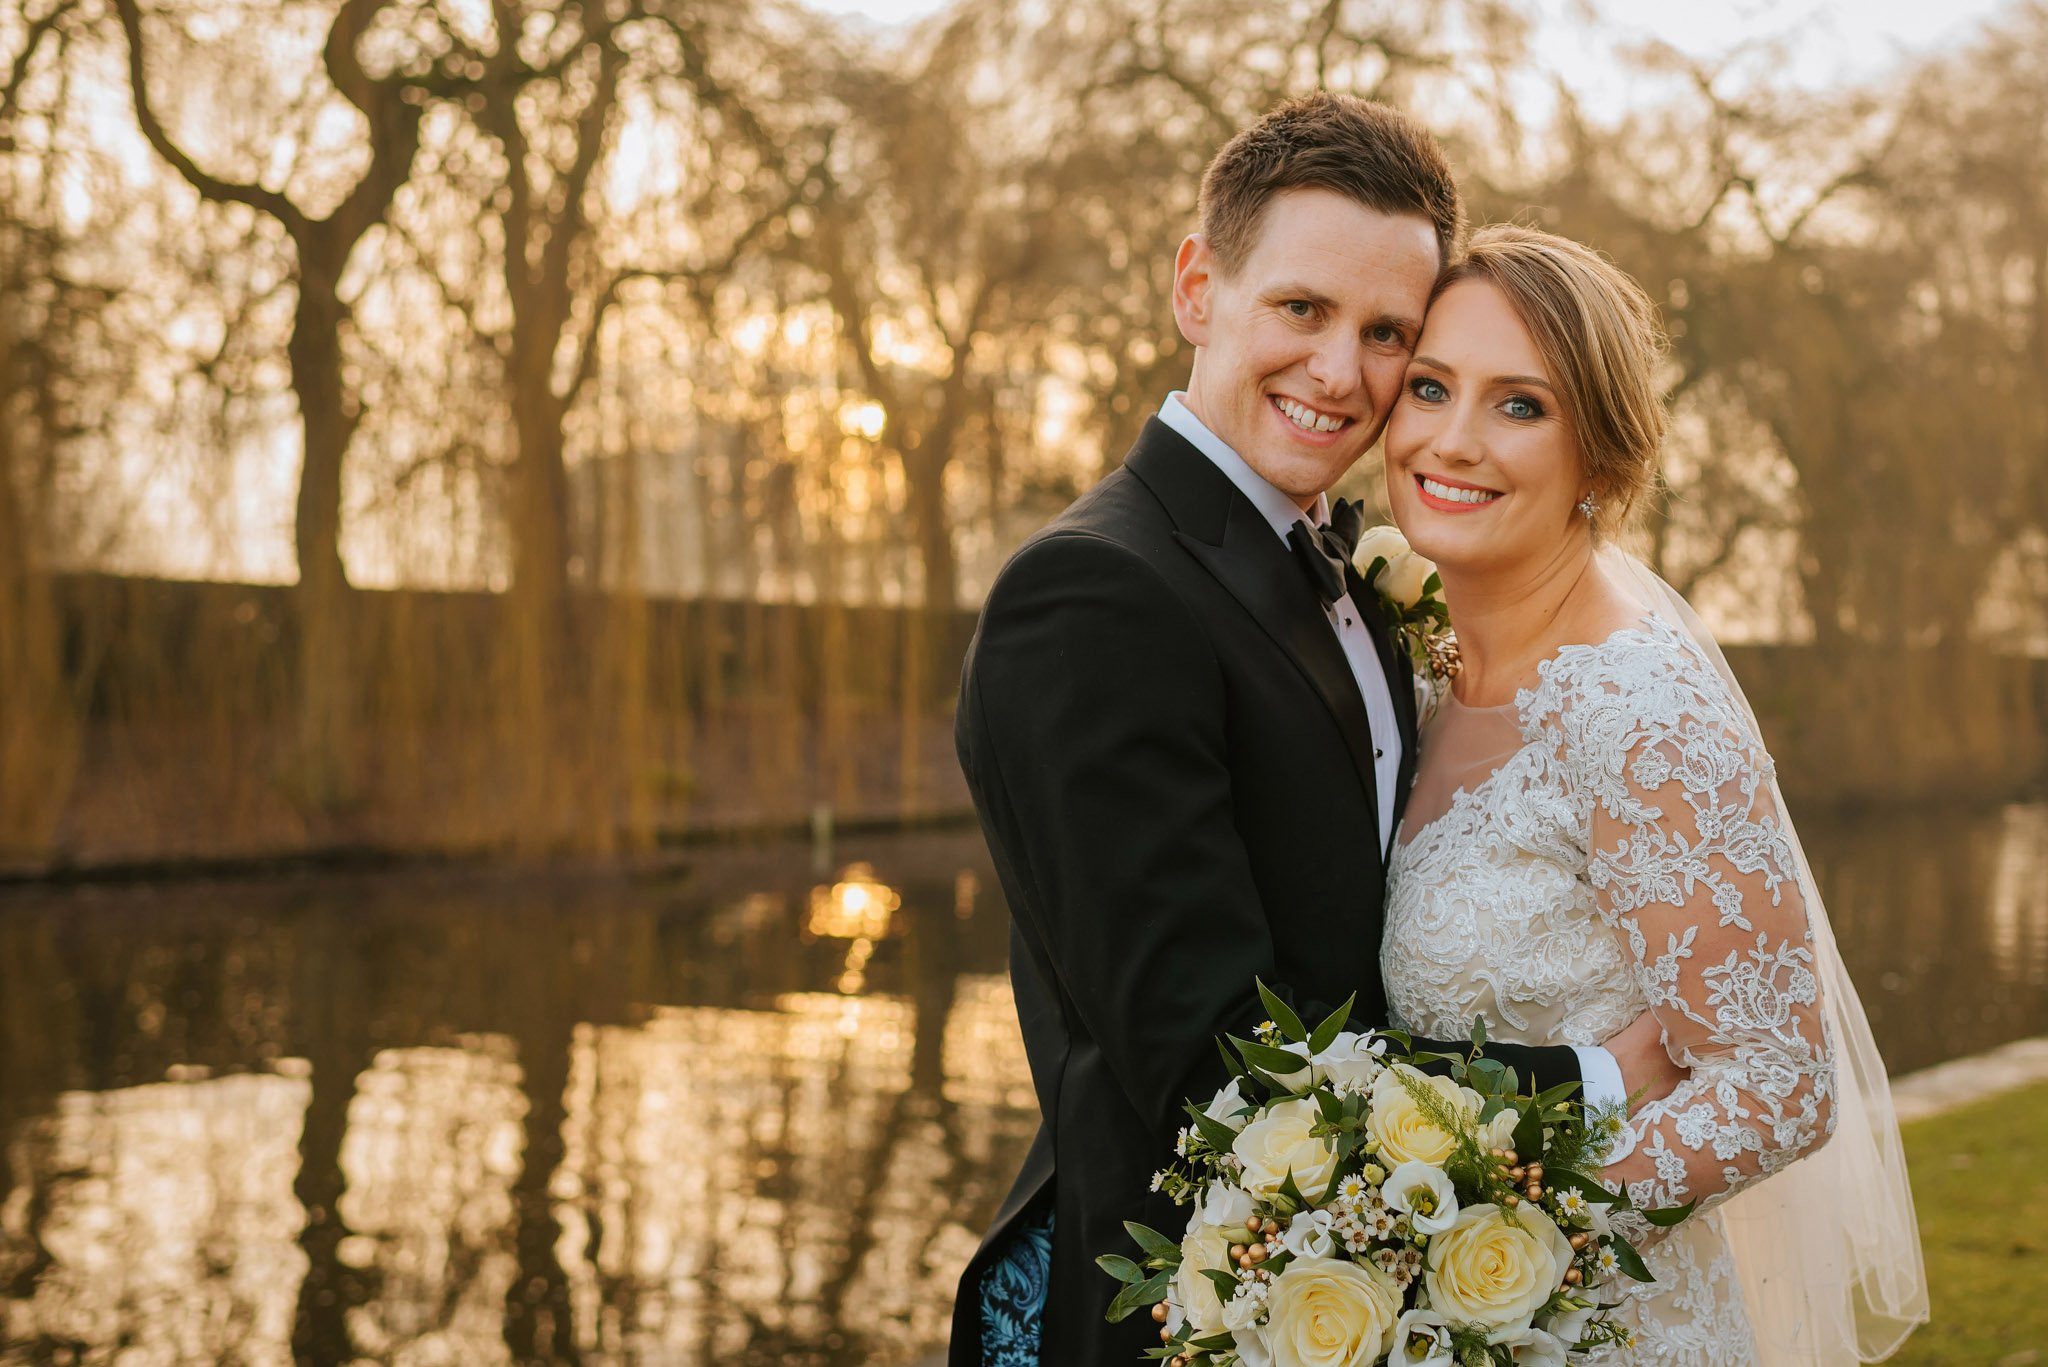 Coombe Abbey wedding in Coventry, Warwickshire - Sam + Matt 29